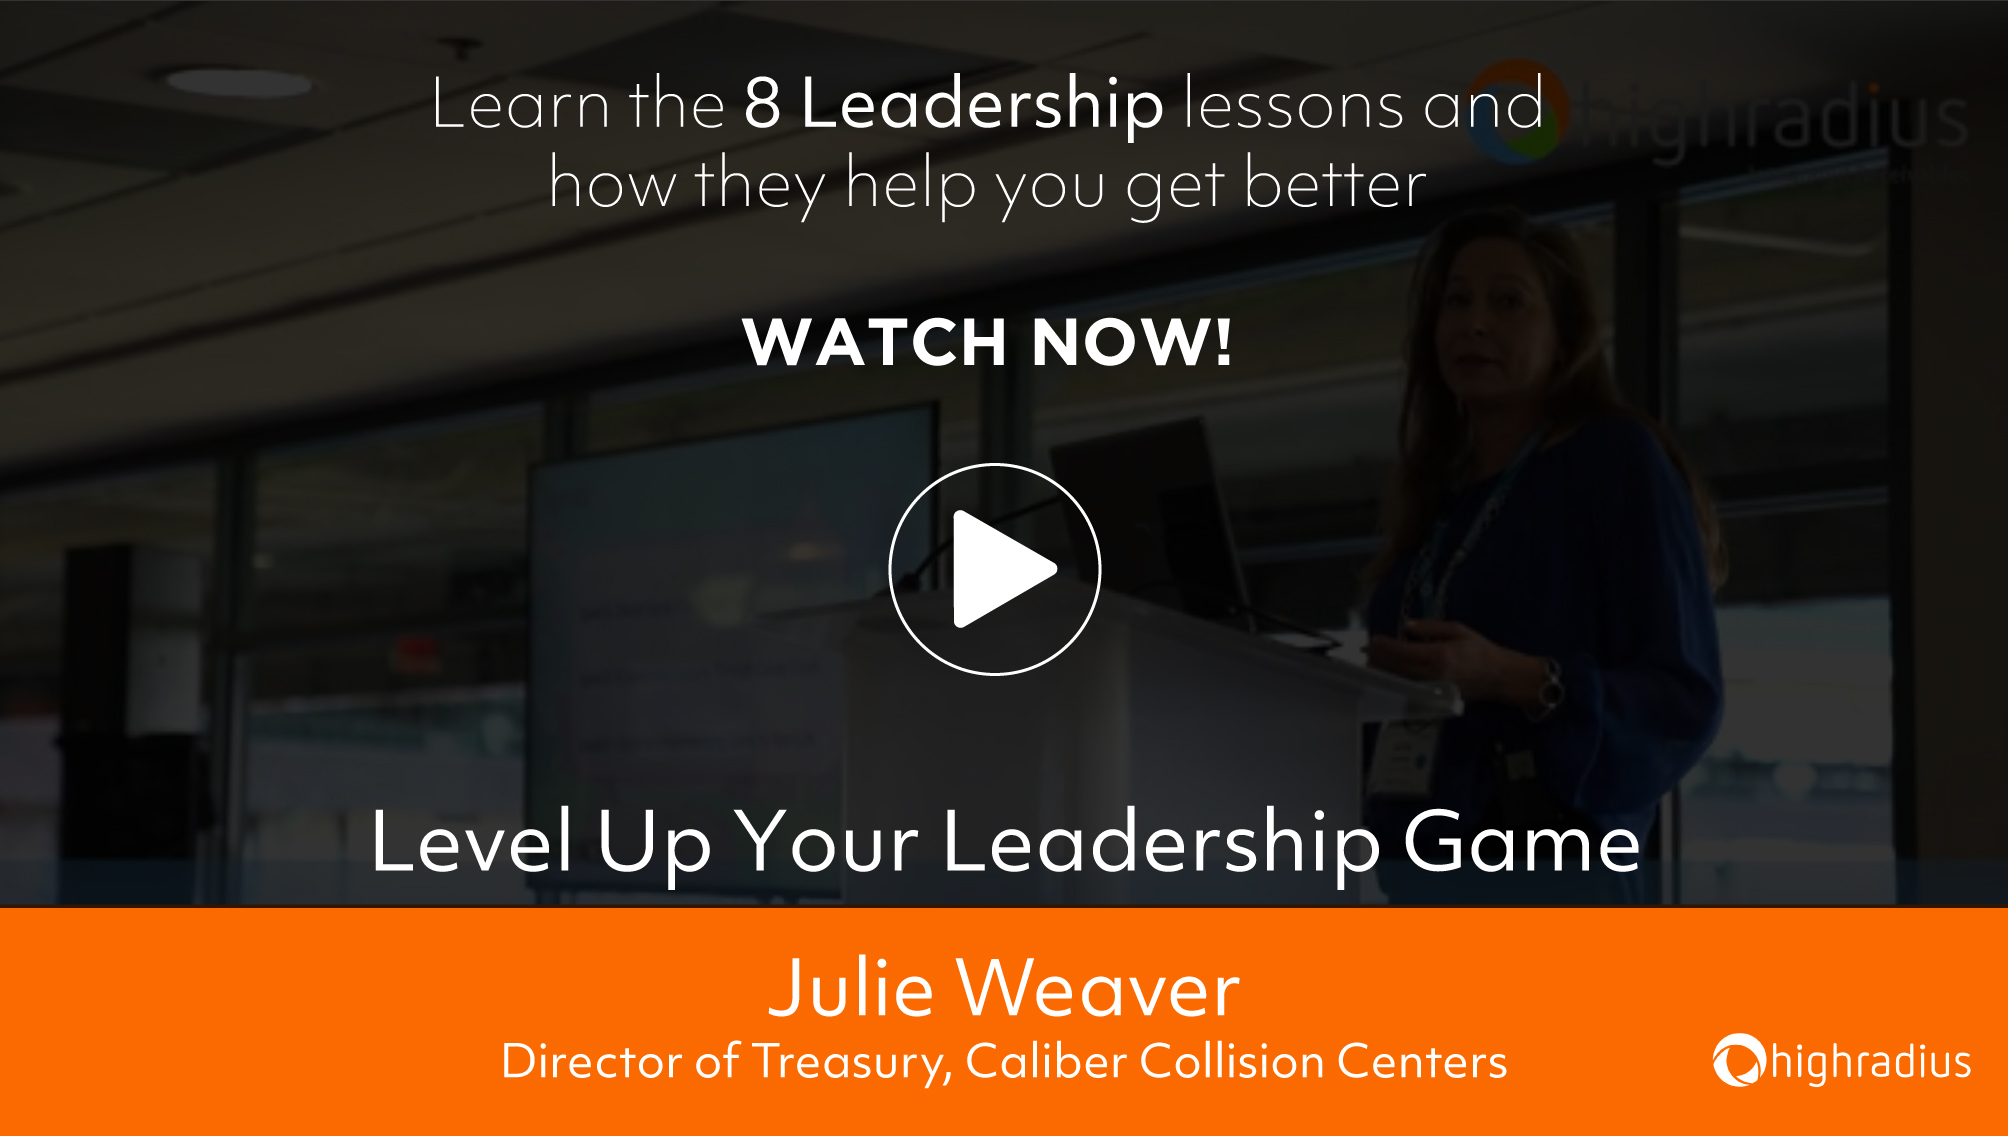 Level Up your Leadership Game